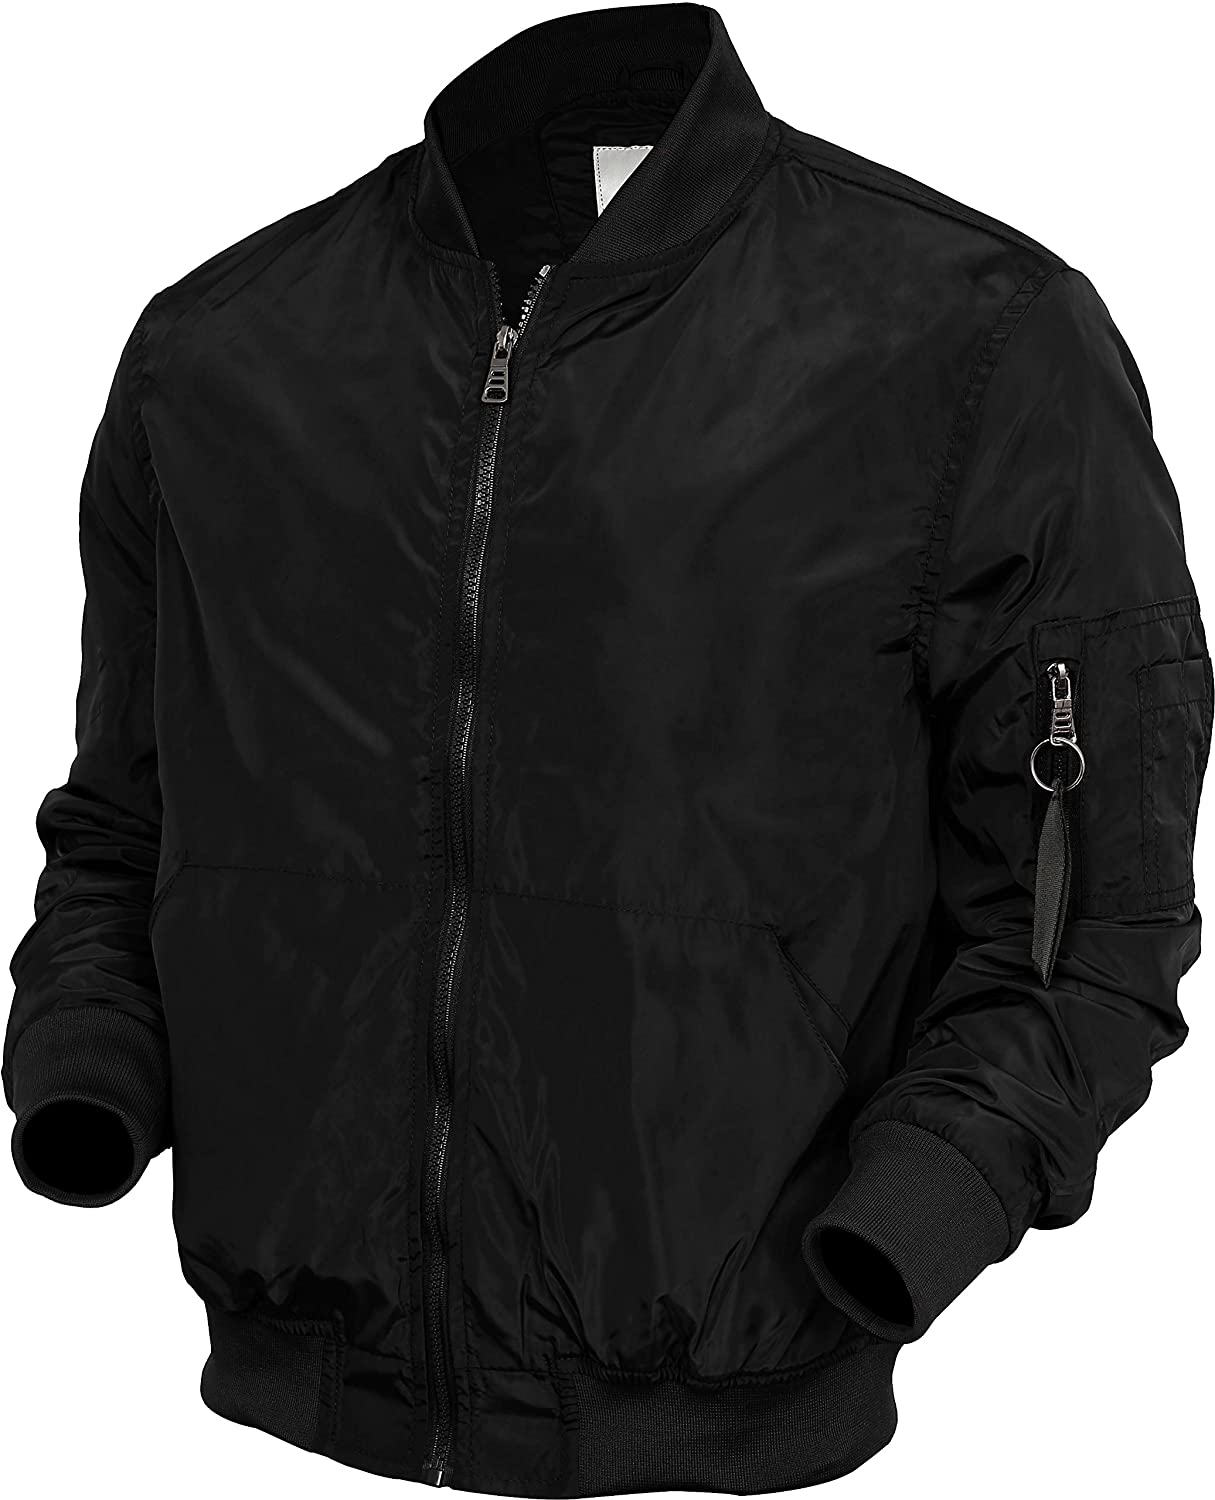 WIV Mens Bomber Jacket Active MA-1 Slim Fit Lightweight Windbreaker